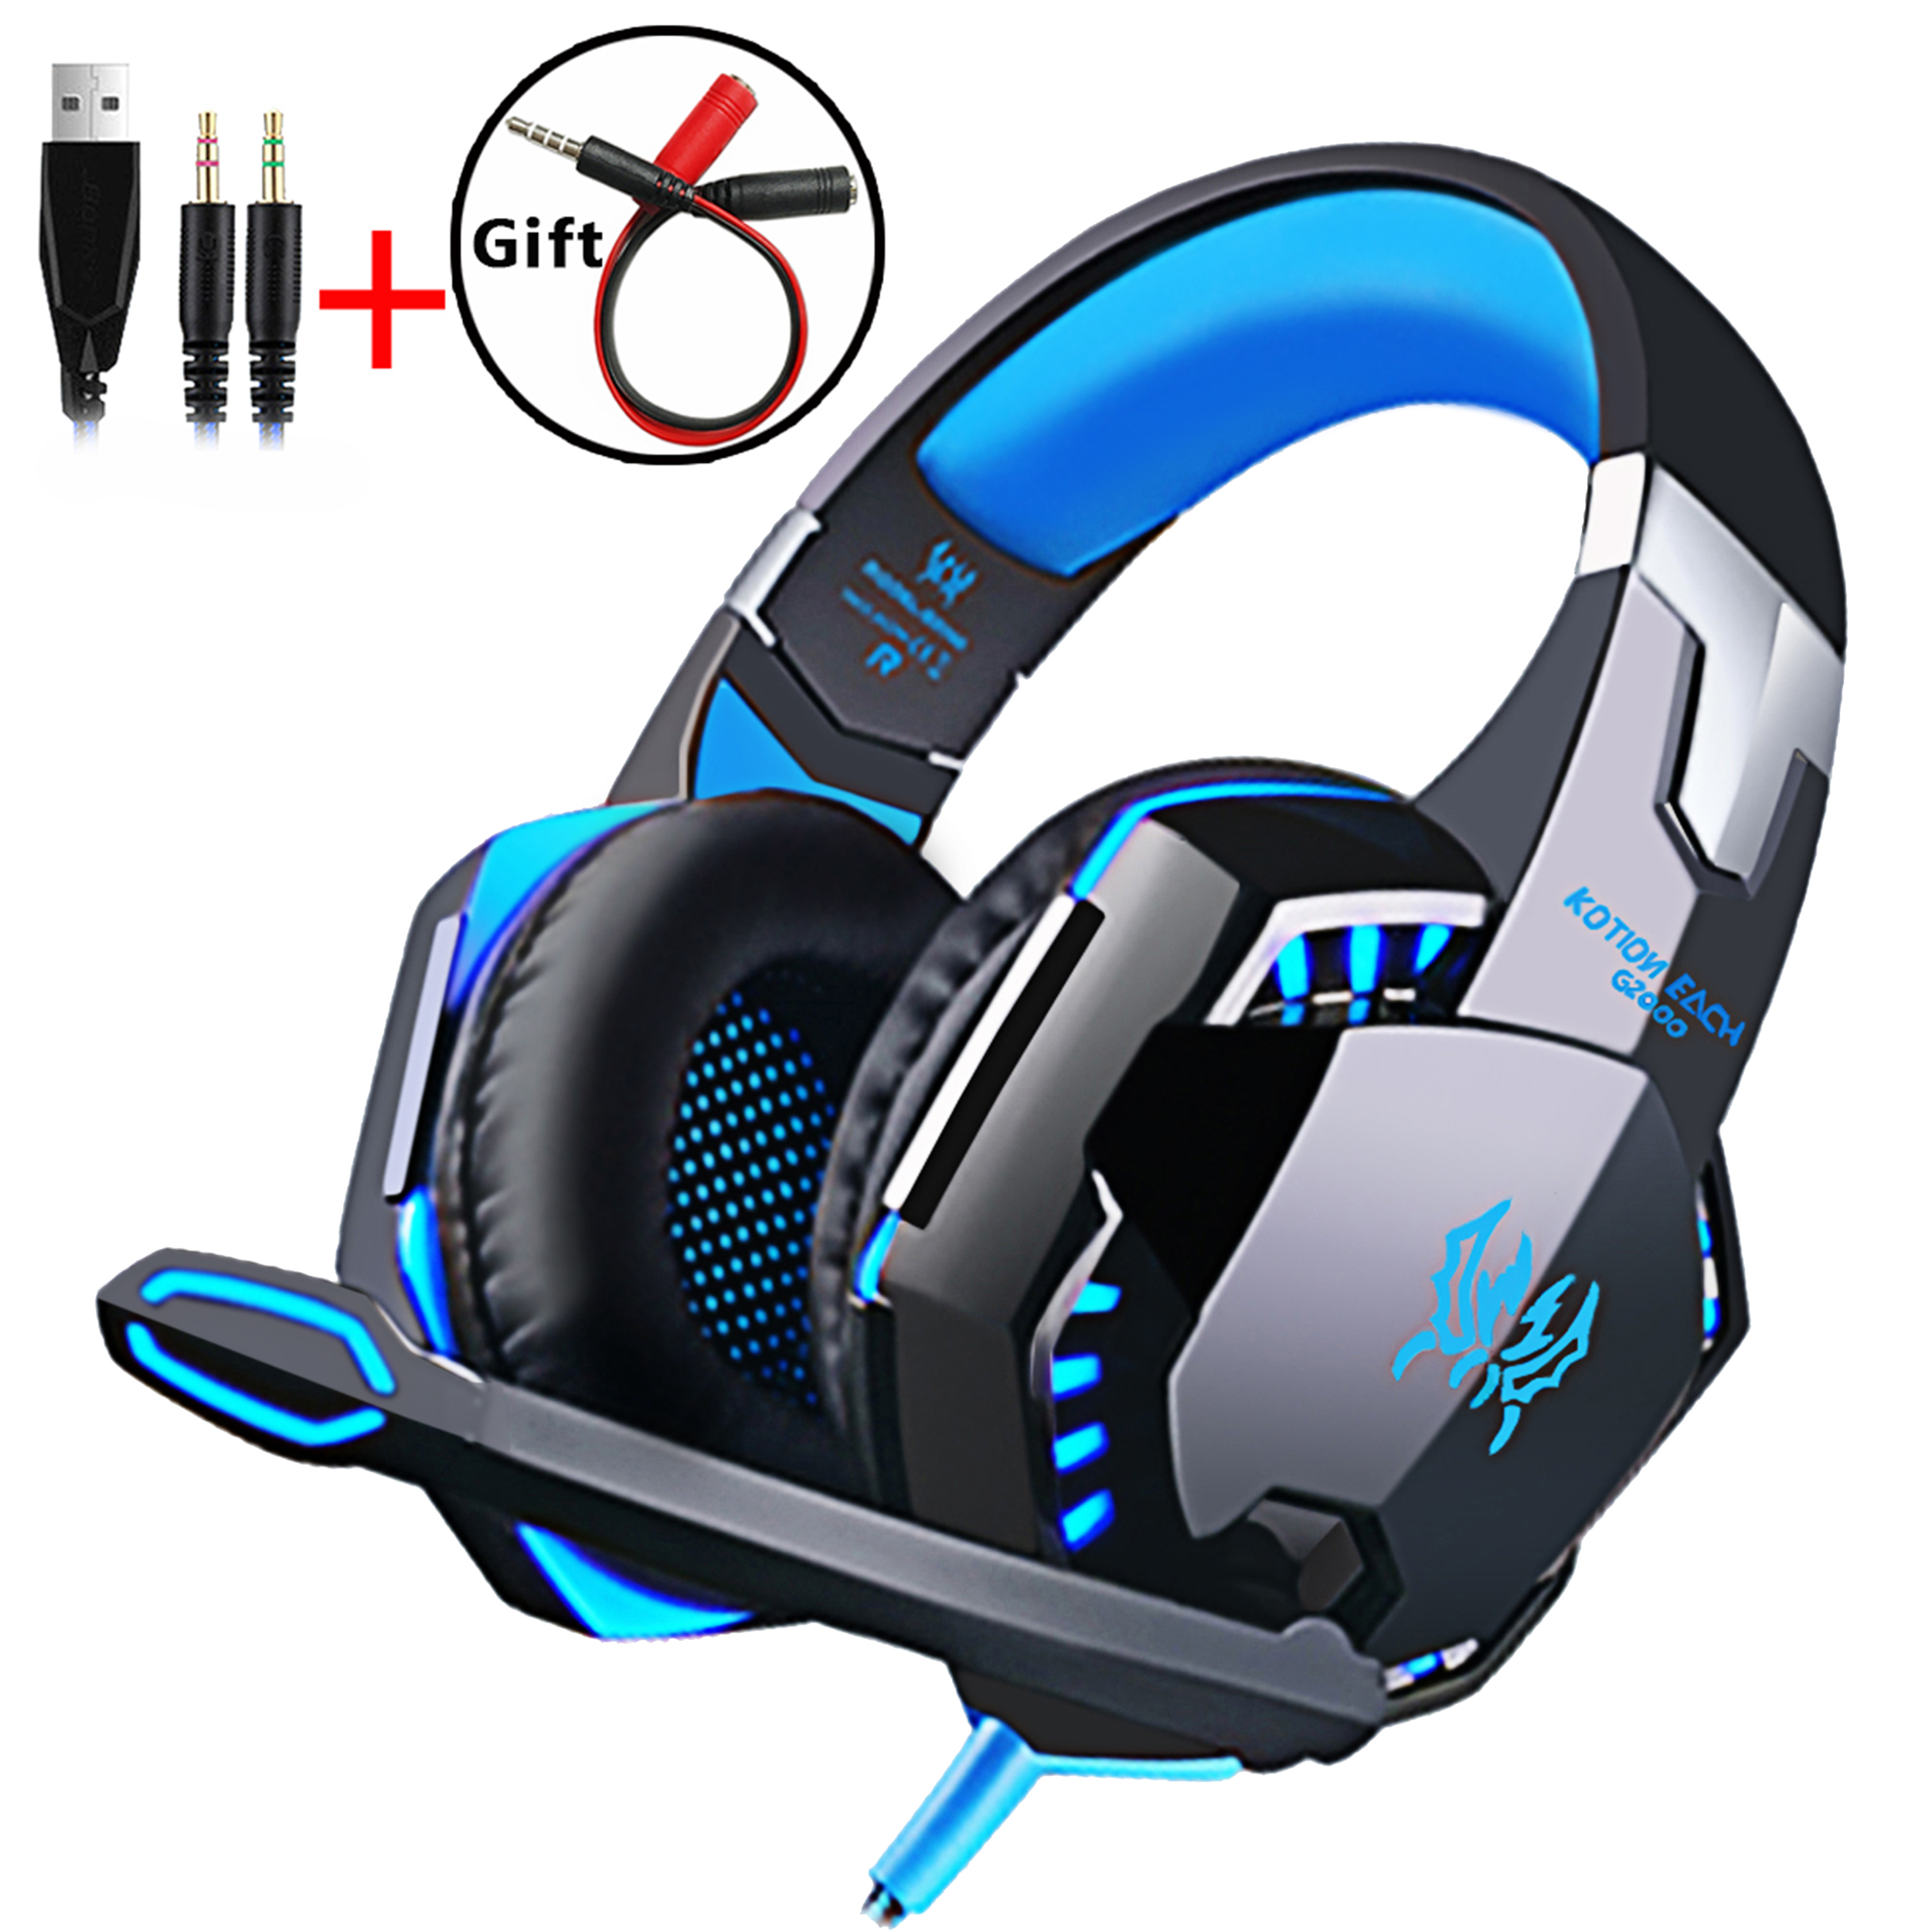 Wired Gaming Headset <font><b>Headphones</b></font> <font><b>Surround</b></font> sound Deep bass Stereo Casque Earphones with Microphone For Game XBox <font><b>PS4</b></font> PC Laptop image